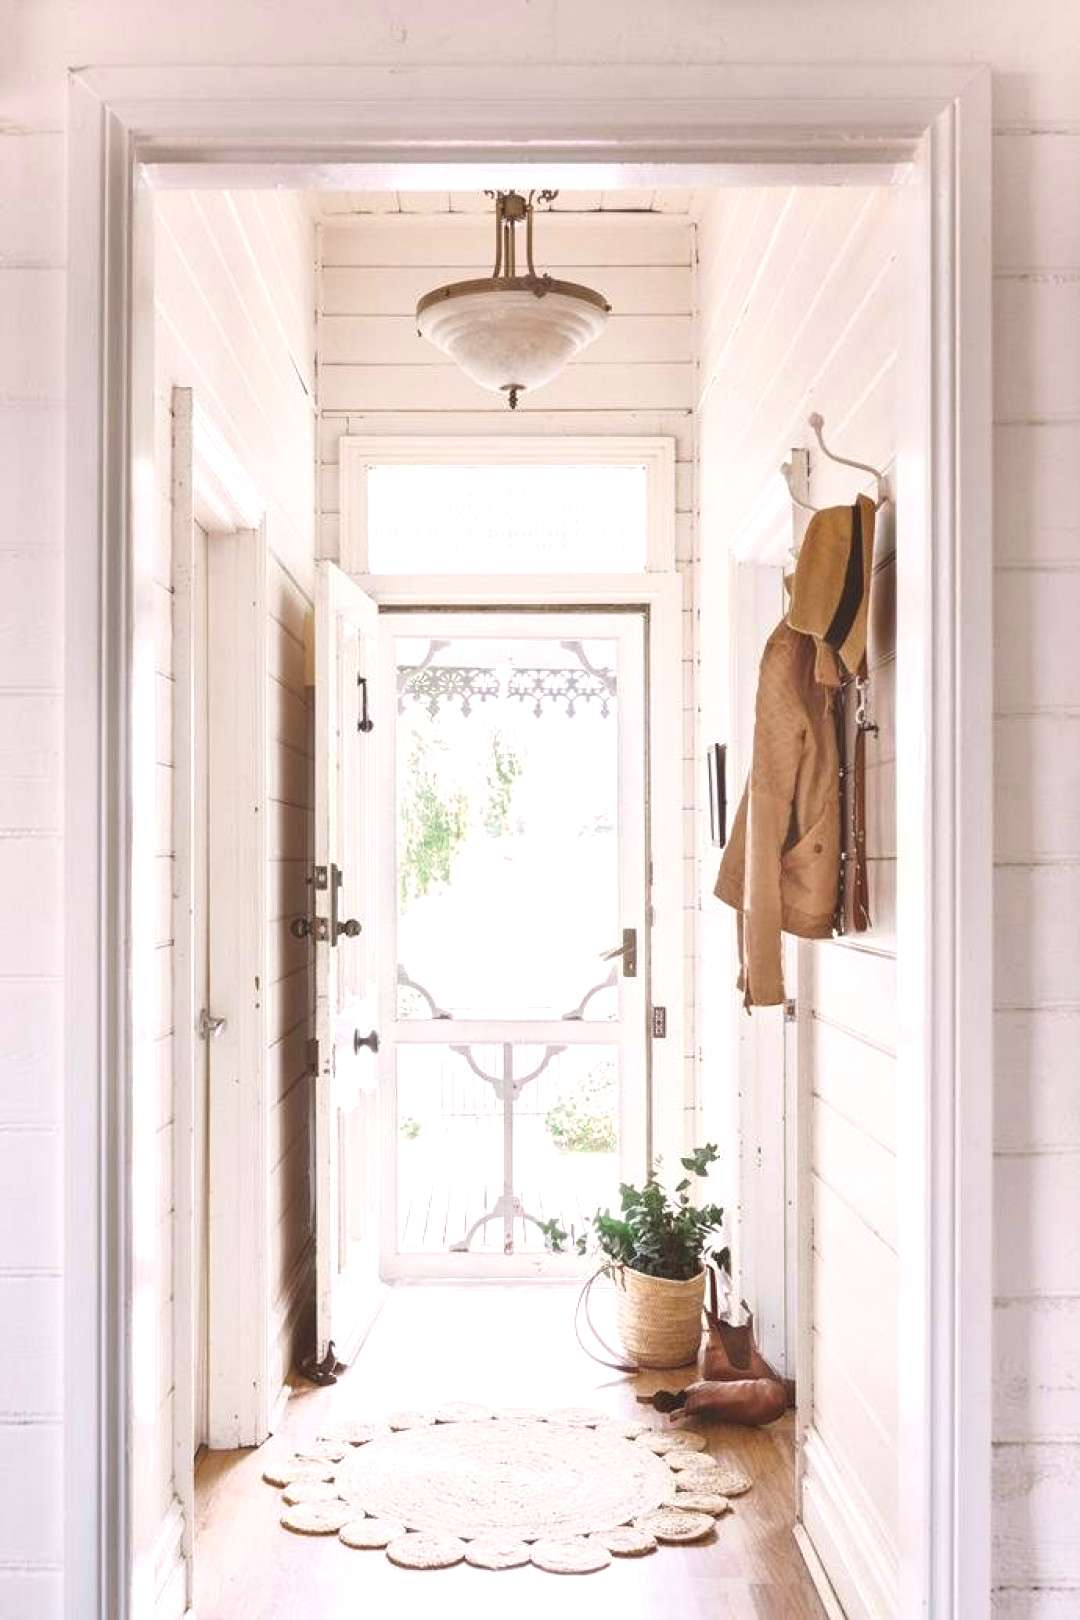 Interior ideas from a photographers Victorian cottage Interior ideas from a photographers Victori